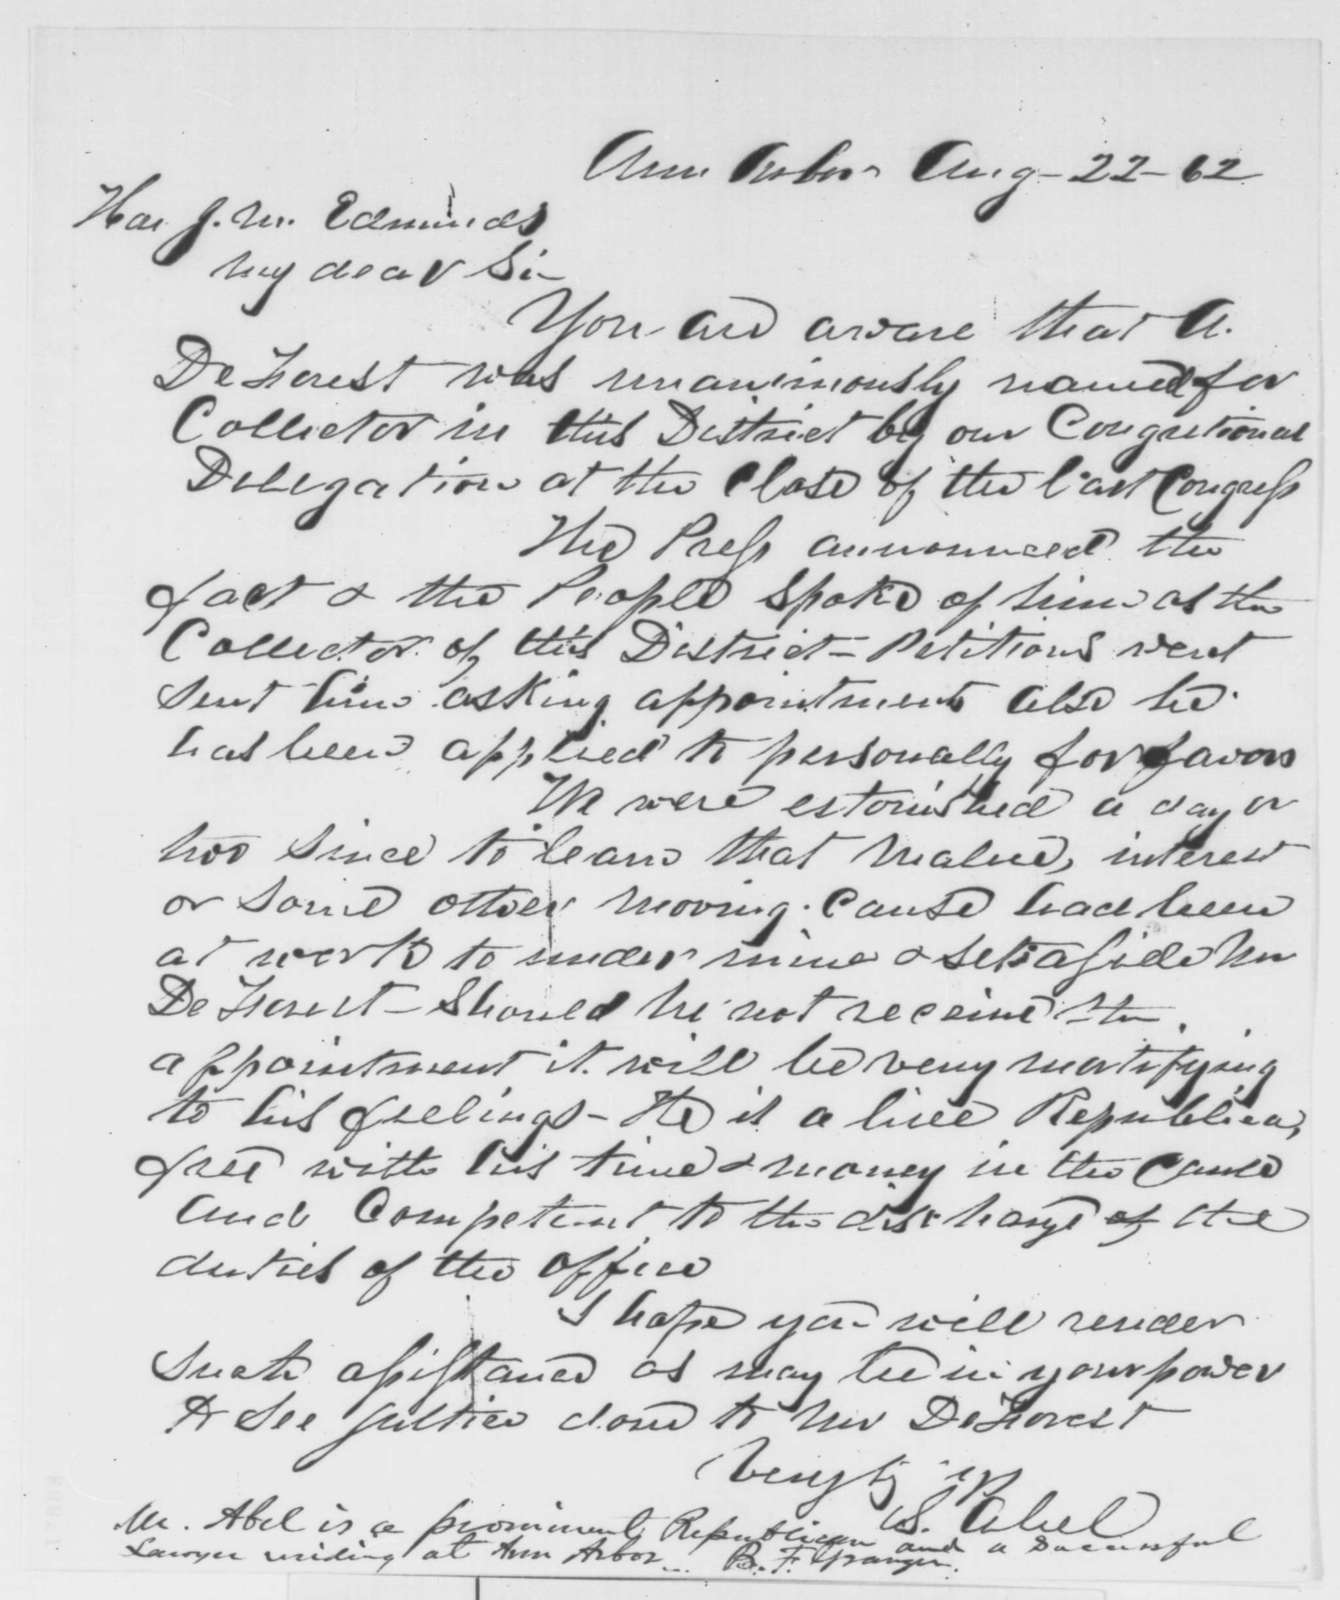 S. Abel to James M. Edmunds, Friday, August 22, 1862  (Michigan appointment; endorsed by Bradley F. Granger)